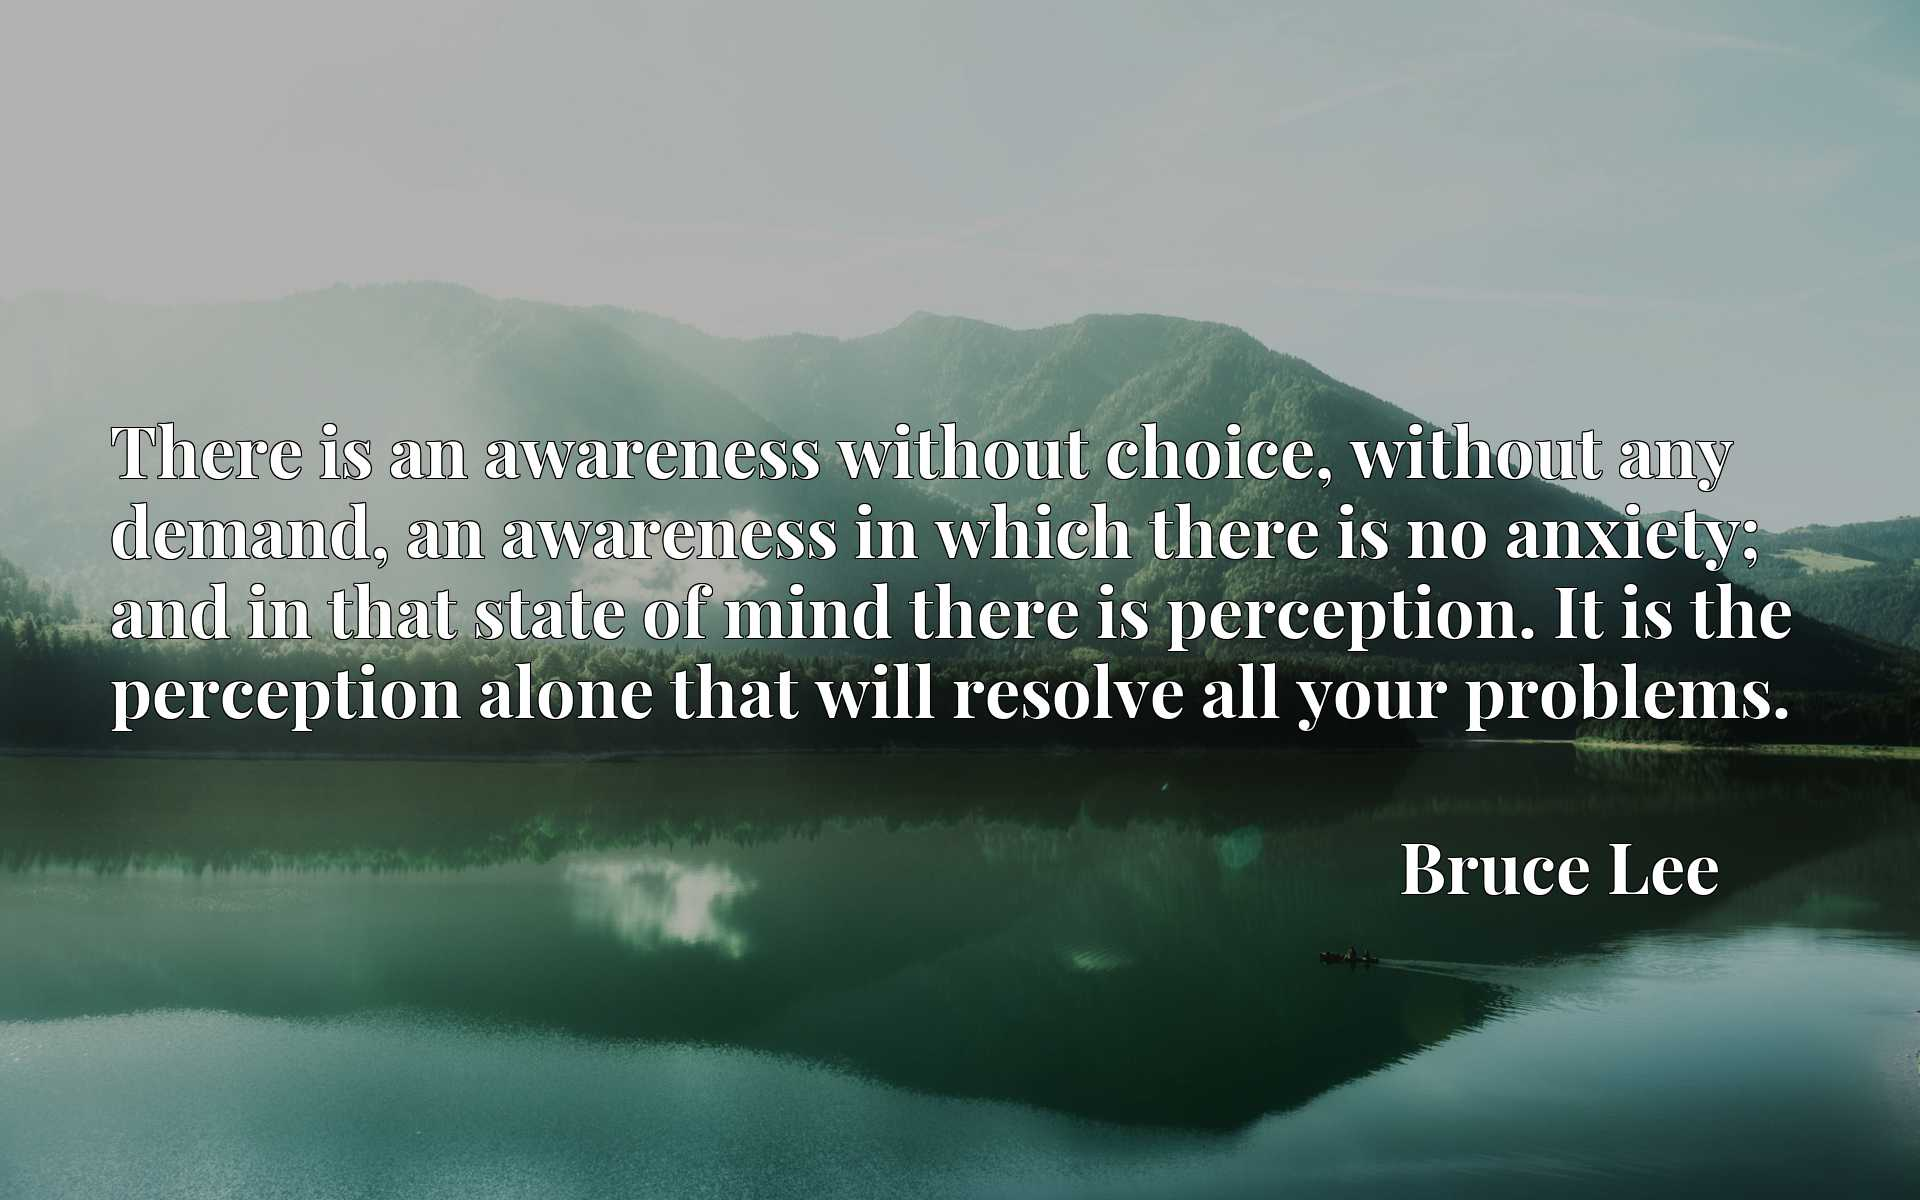 There is an awareness without choice, without any demand, an awareness in which there is no anxiety; and in that state of mind there is perception. It is the perception alone that will resolve all your problems.